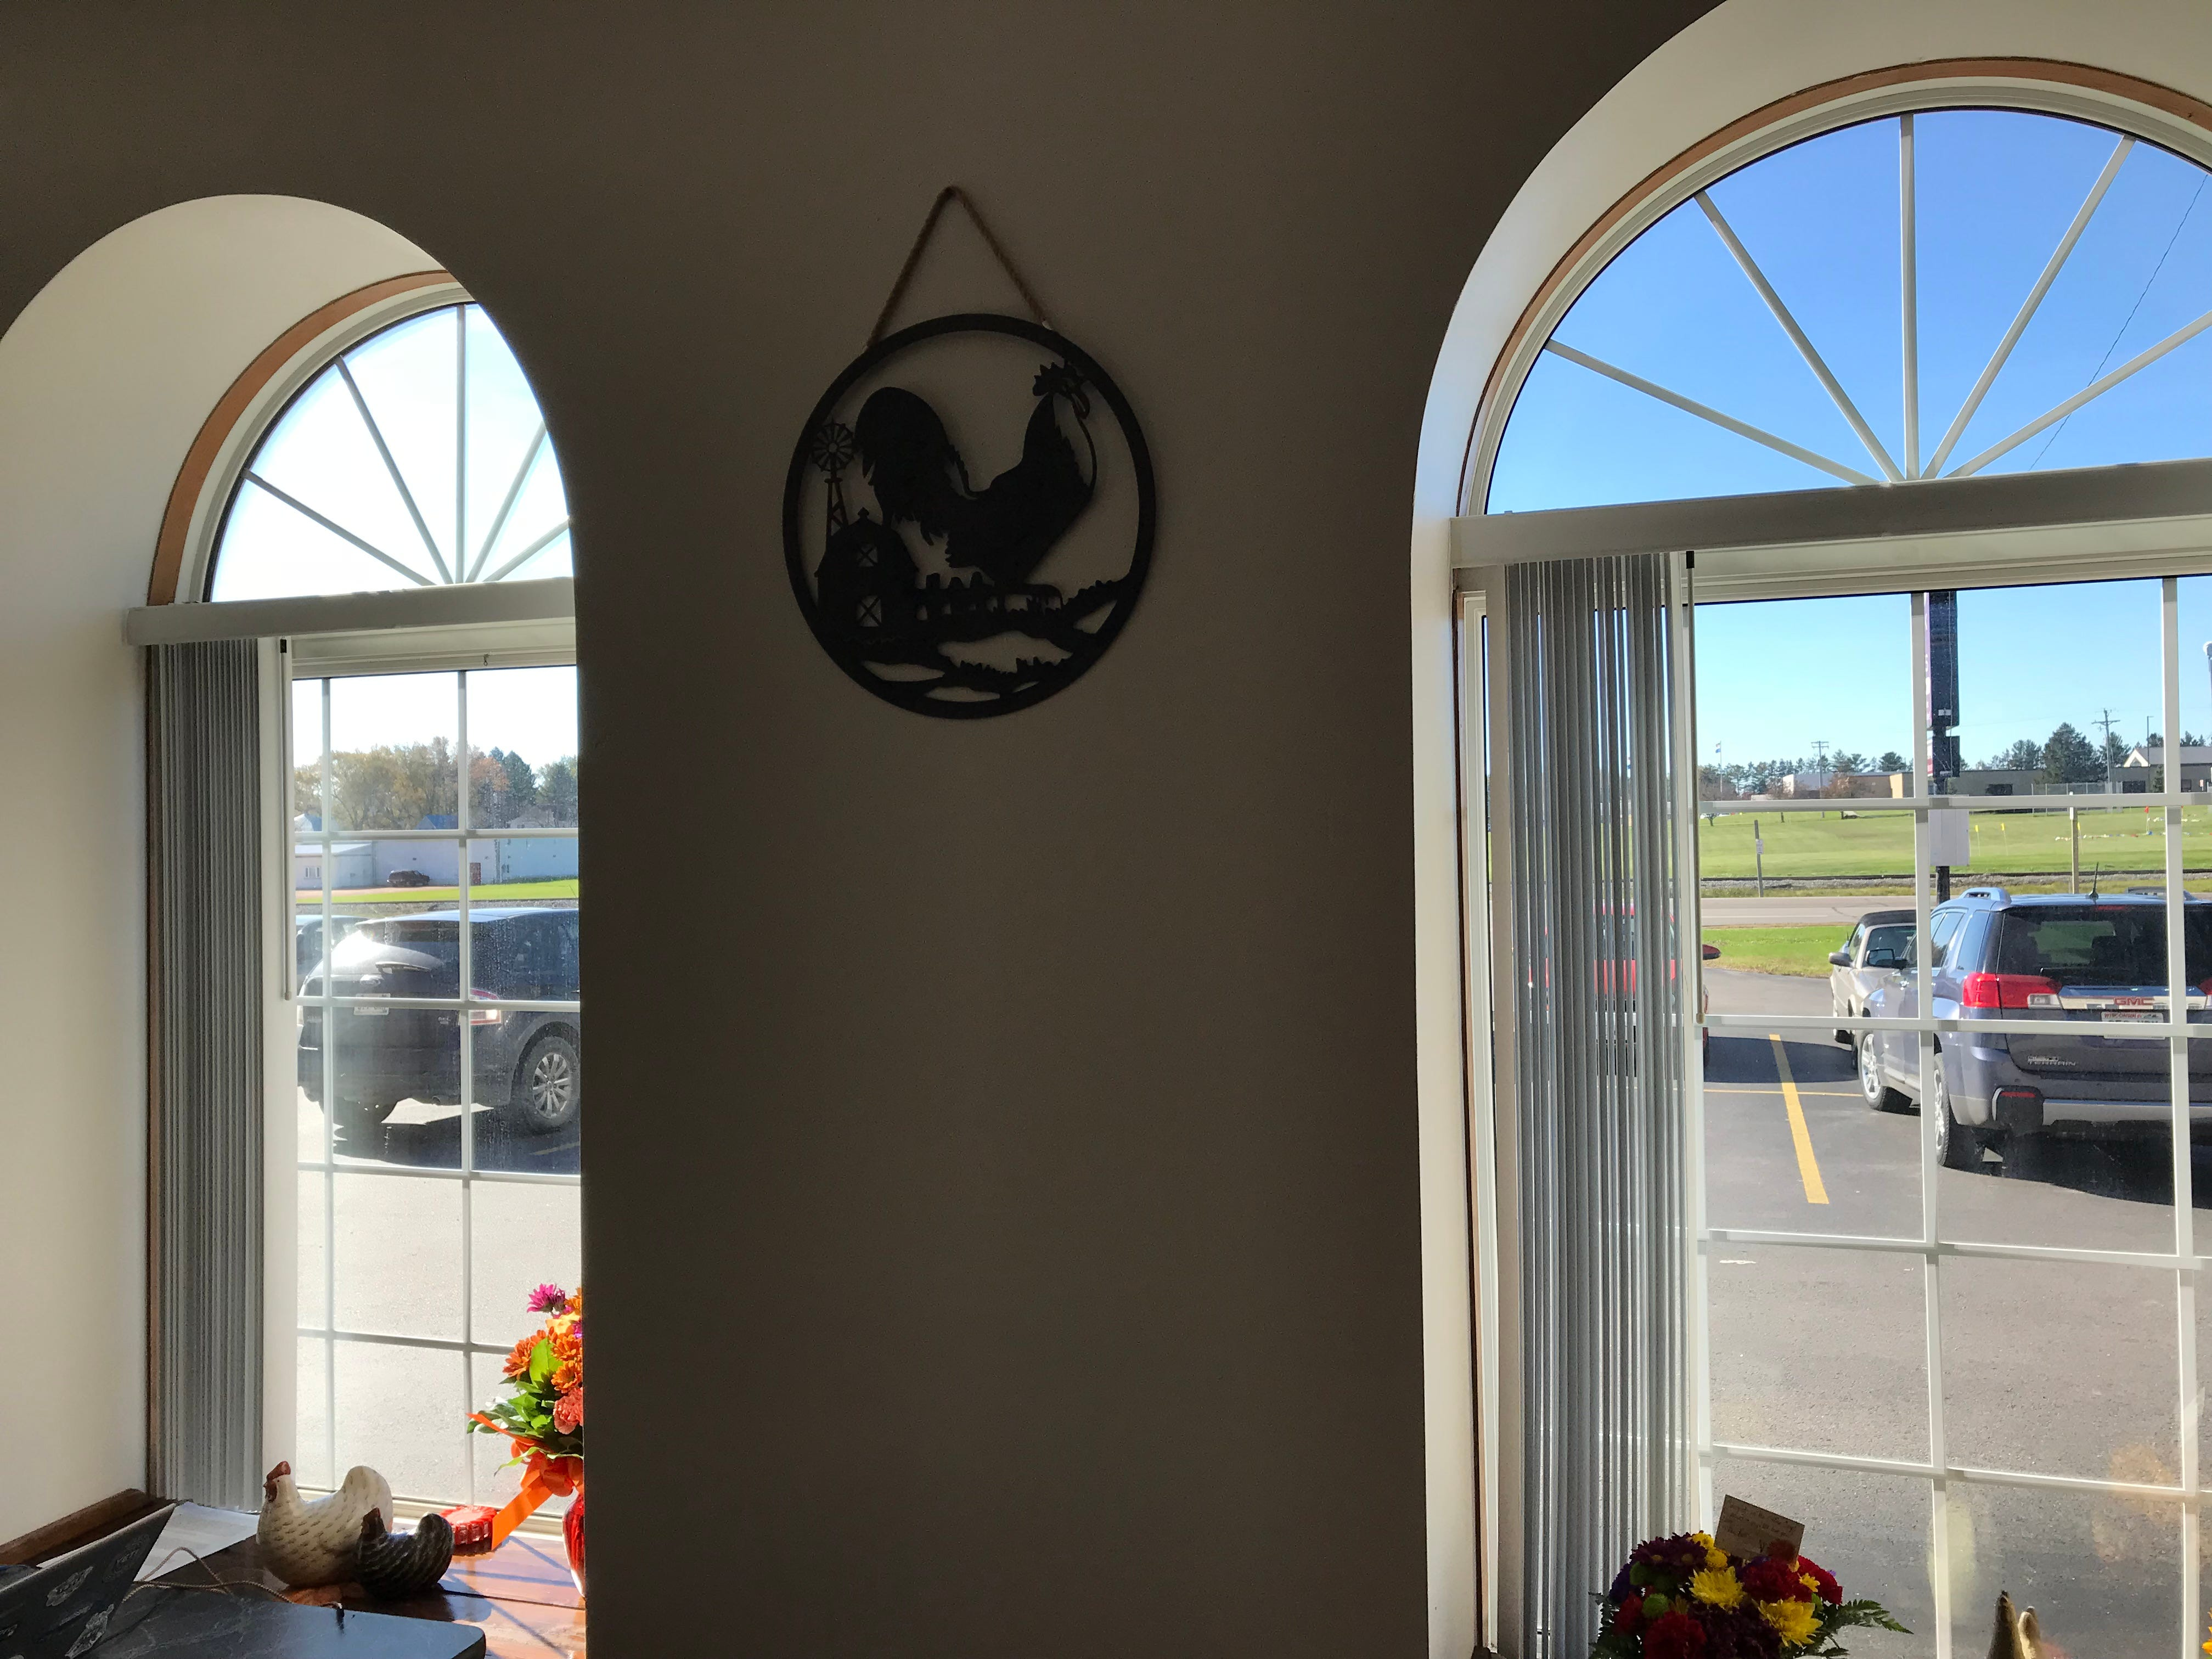 A chicken logo and decor fills The Coffee Coop that opened on Oct. 15 in Colby.